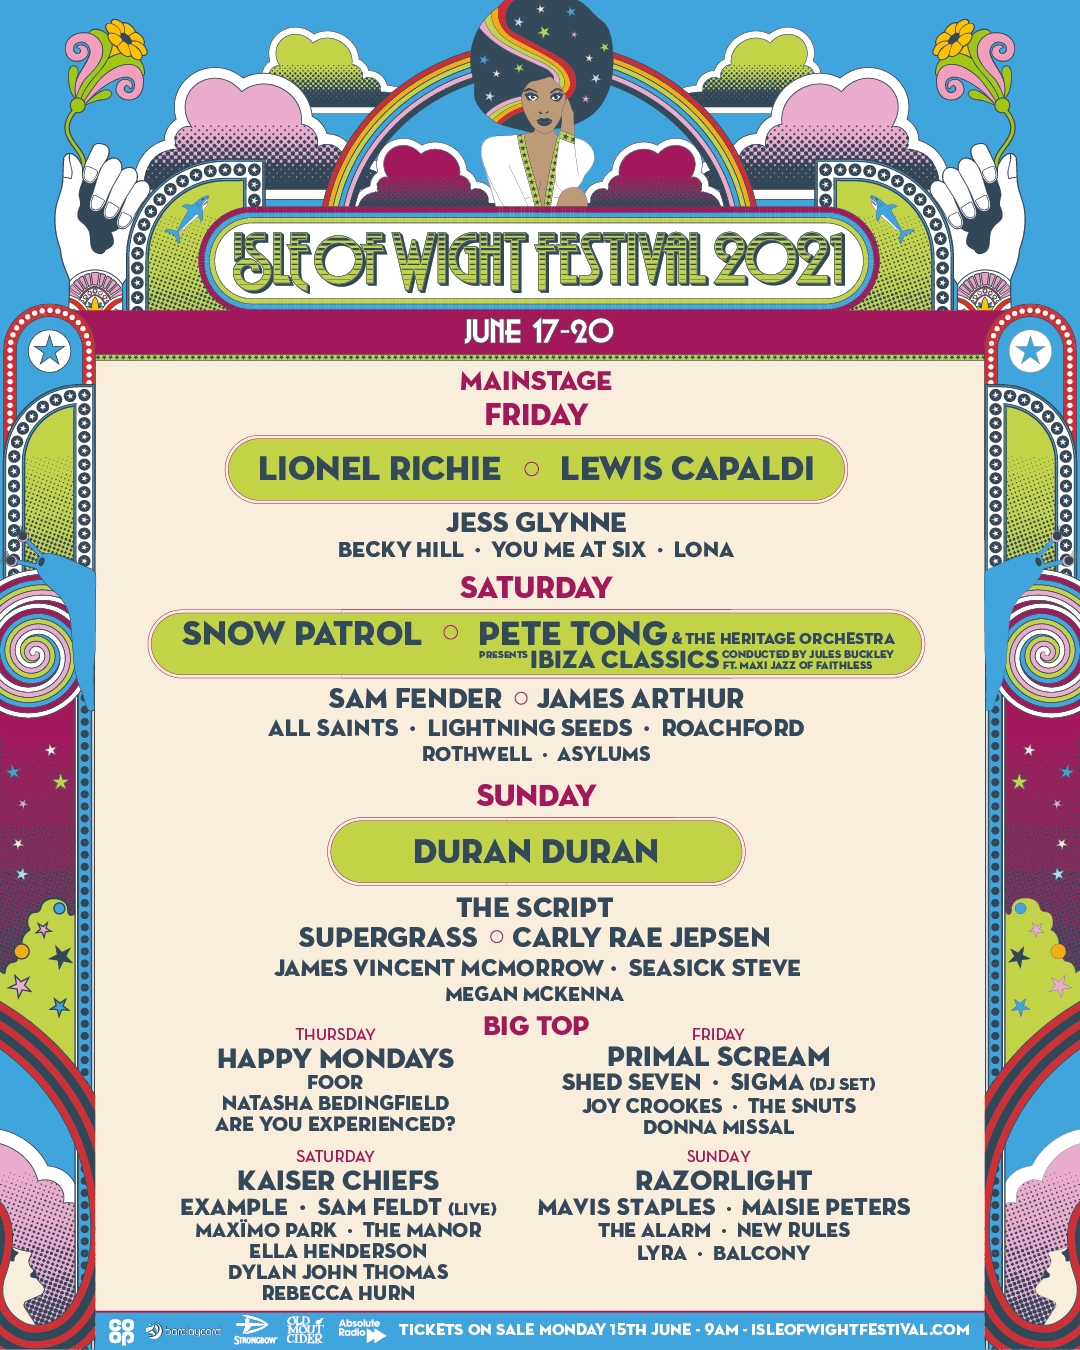 Happiness Festival 2021 Tickets